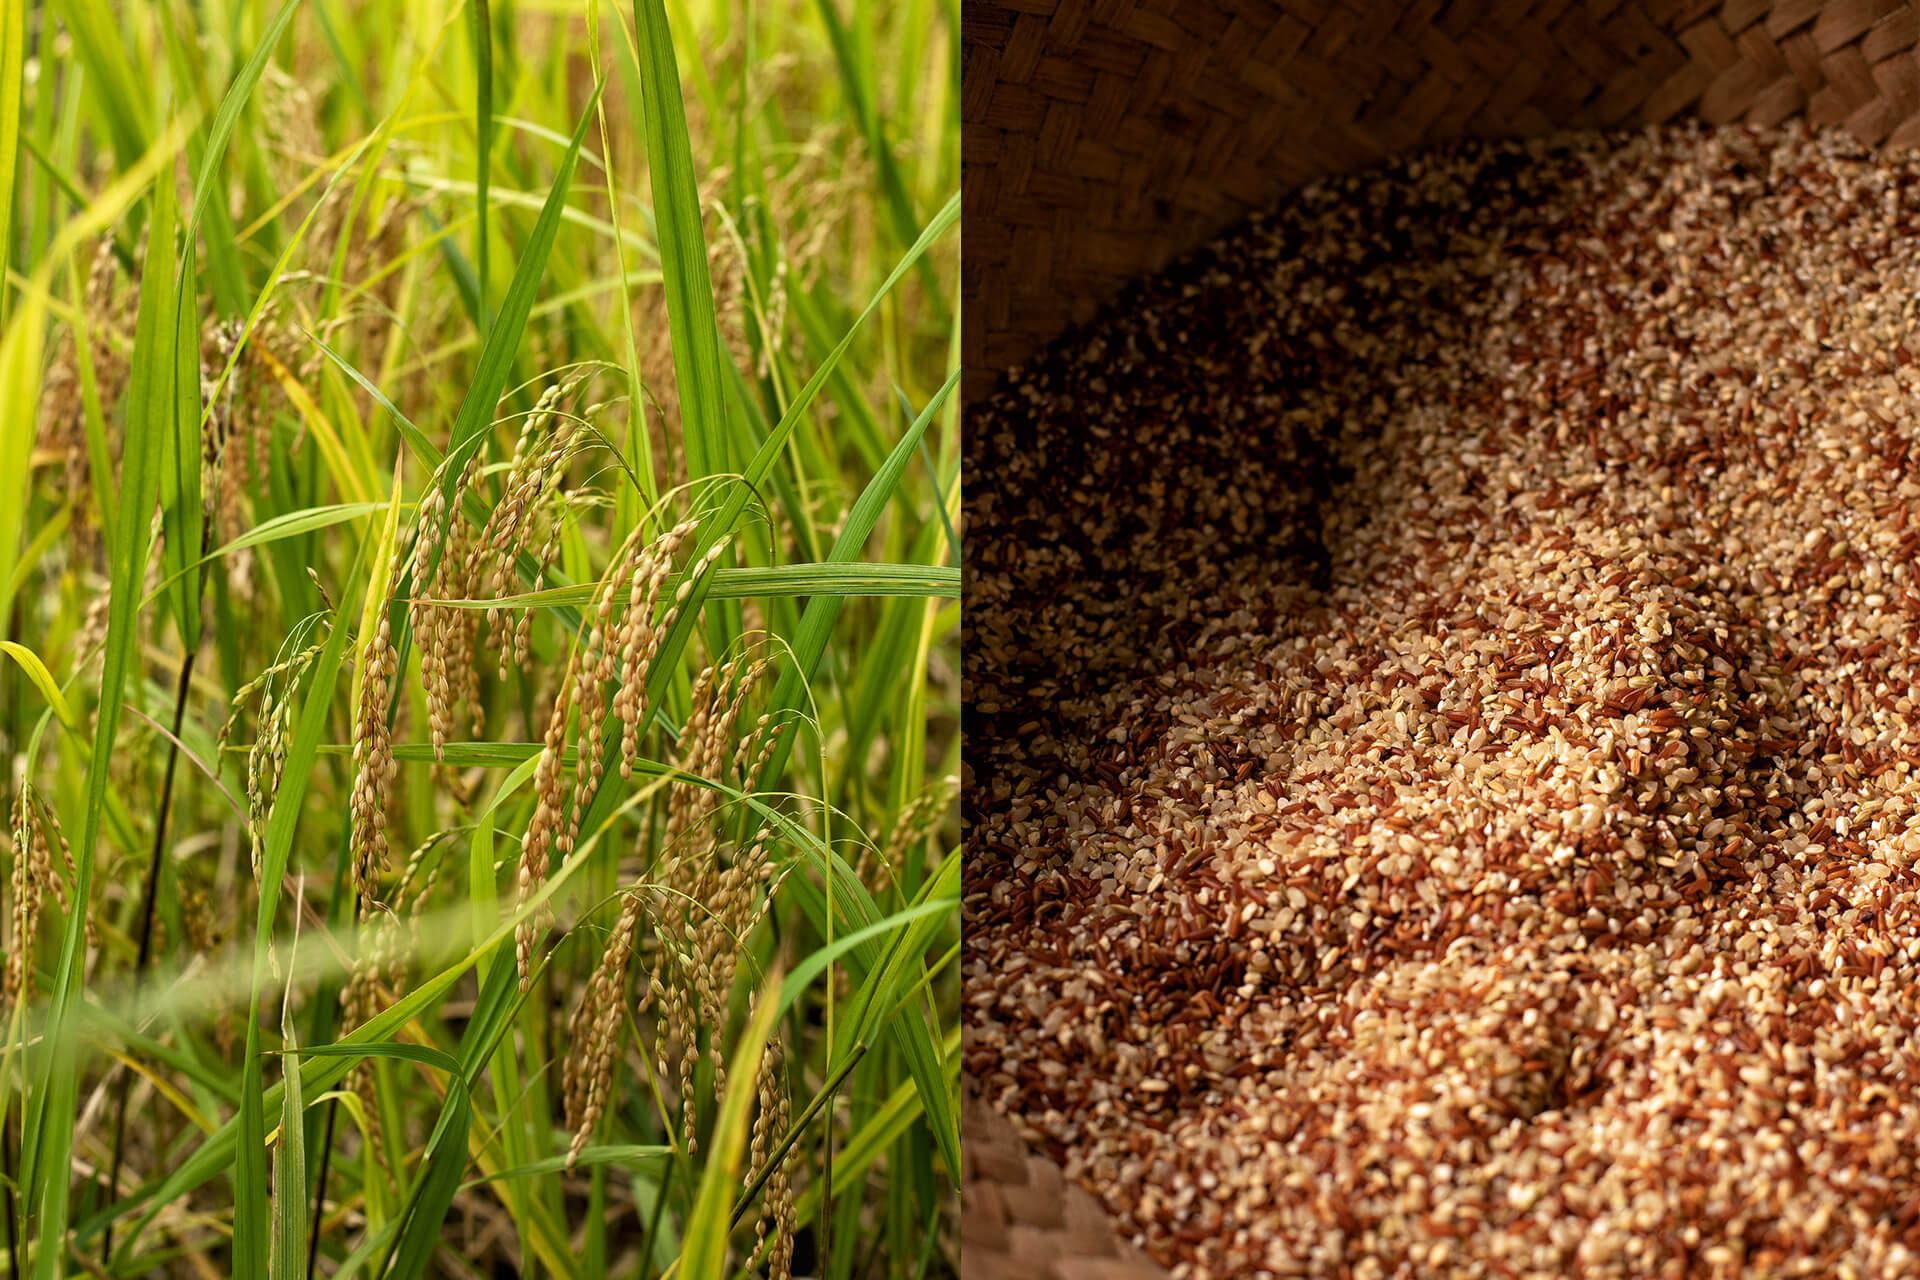 Banaue Heirloom Rice from stalk (left) to grain (right).